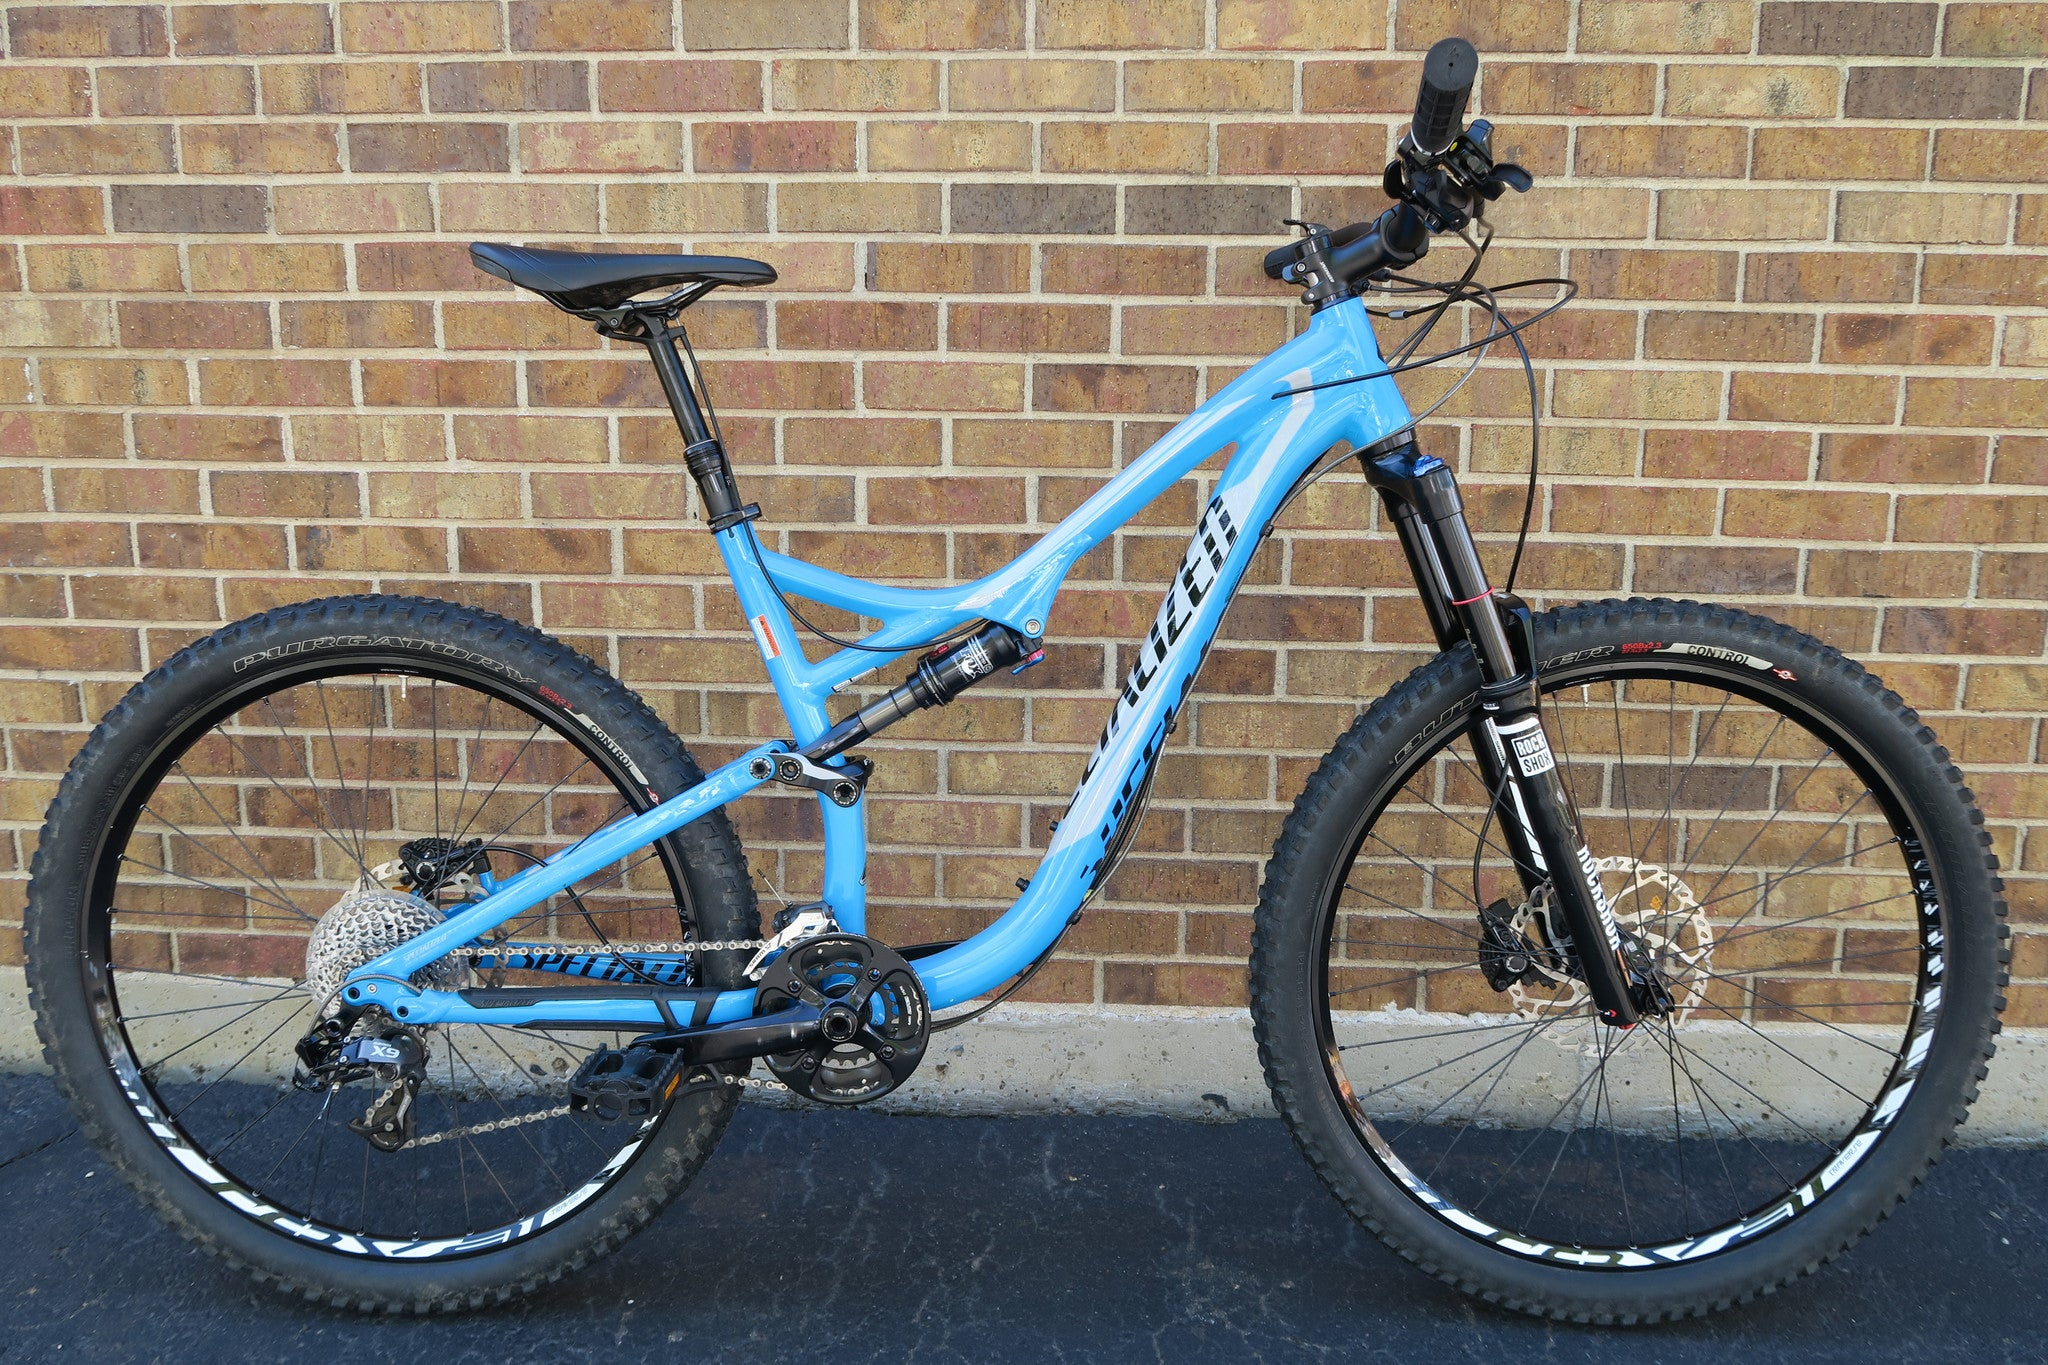 2015 SPECIALIZED STUMPJUMPER COMP EVO 650B